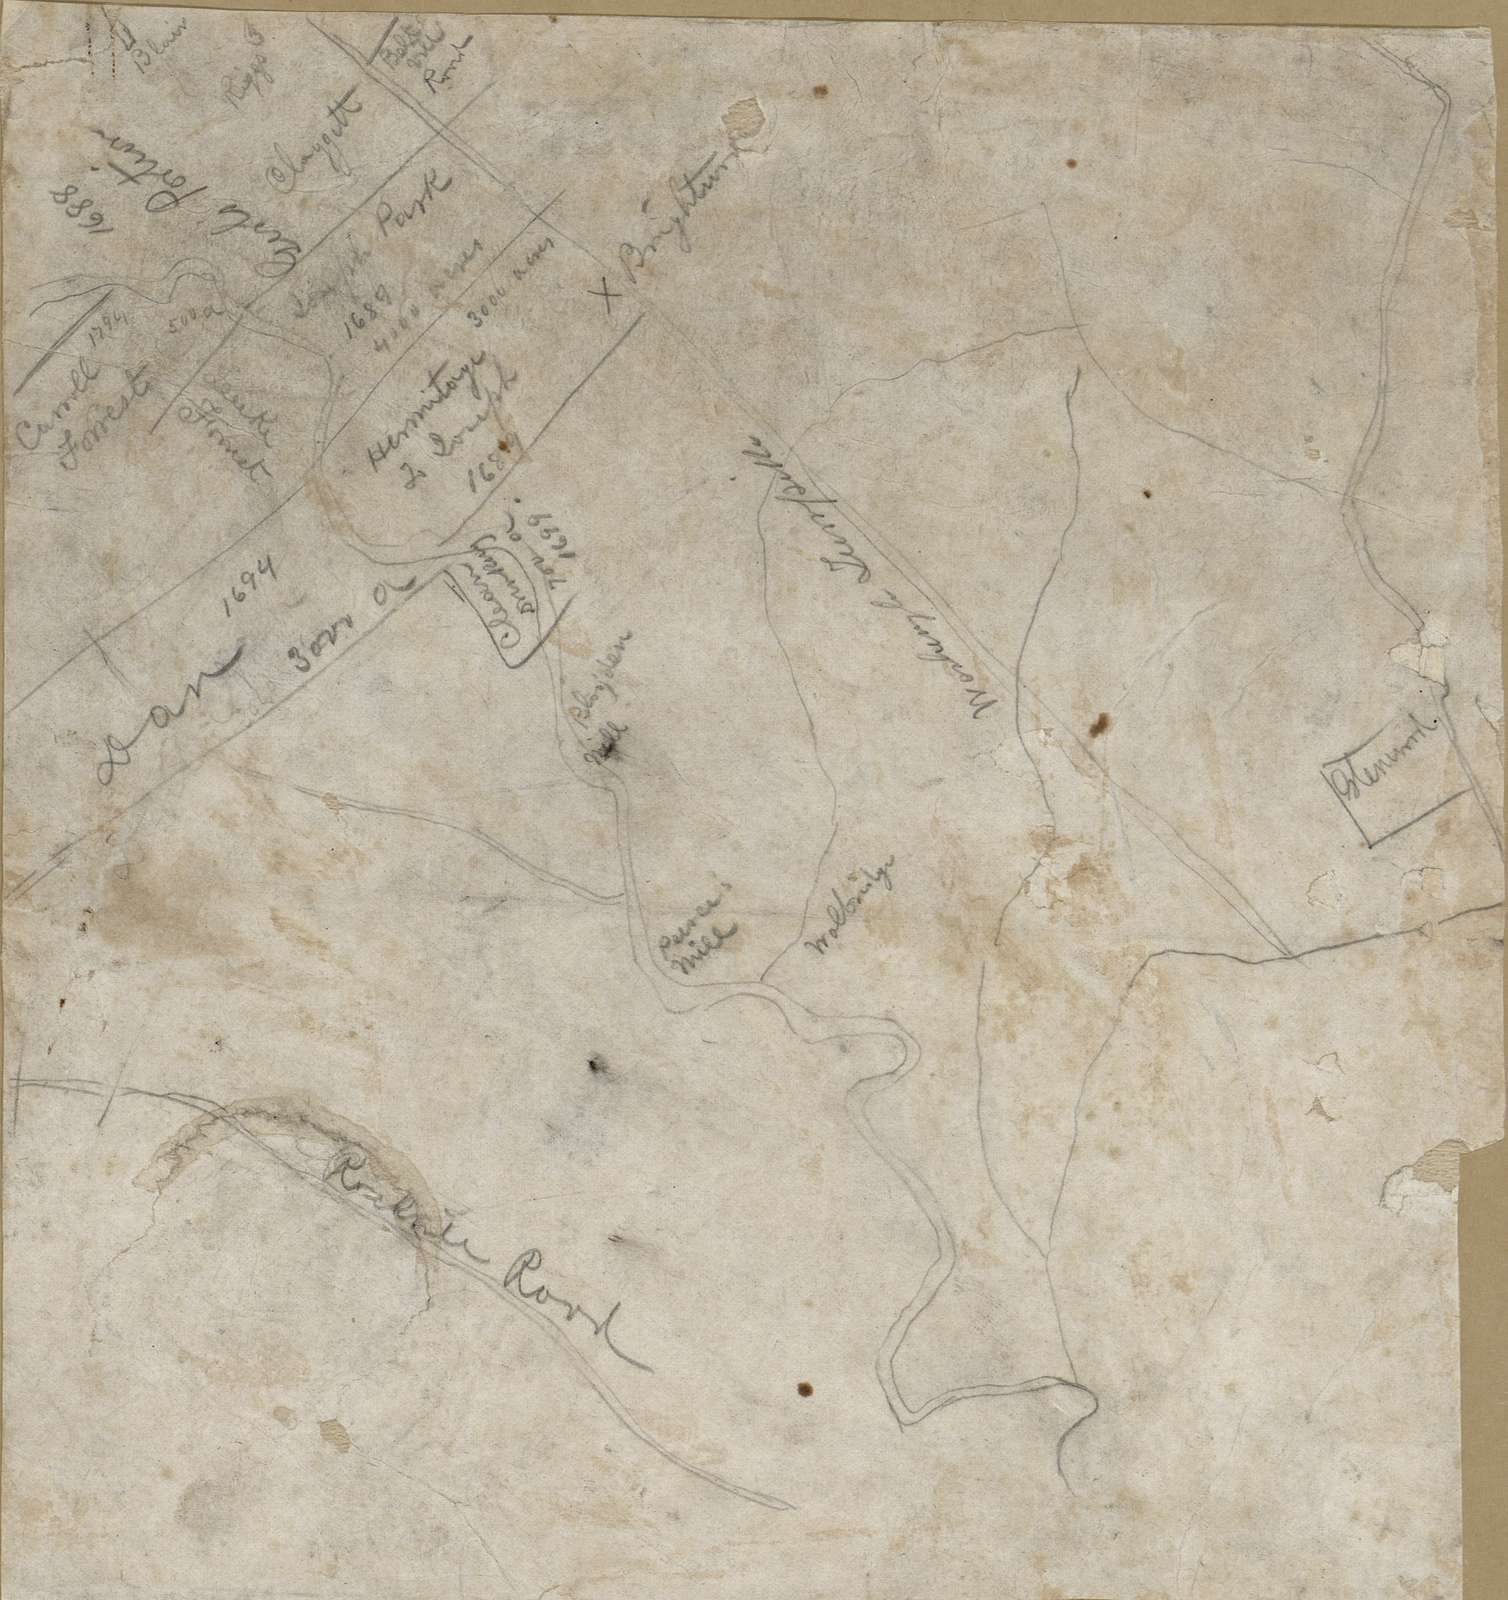 [Map of the area of northern Washington D.C. between Rockville Road and Washington Turnpike showing land tracts, owners' names, and dates].